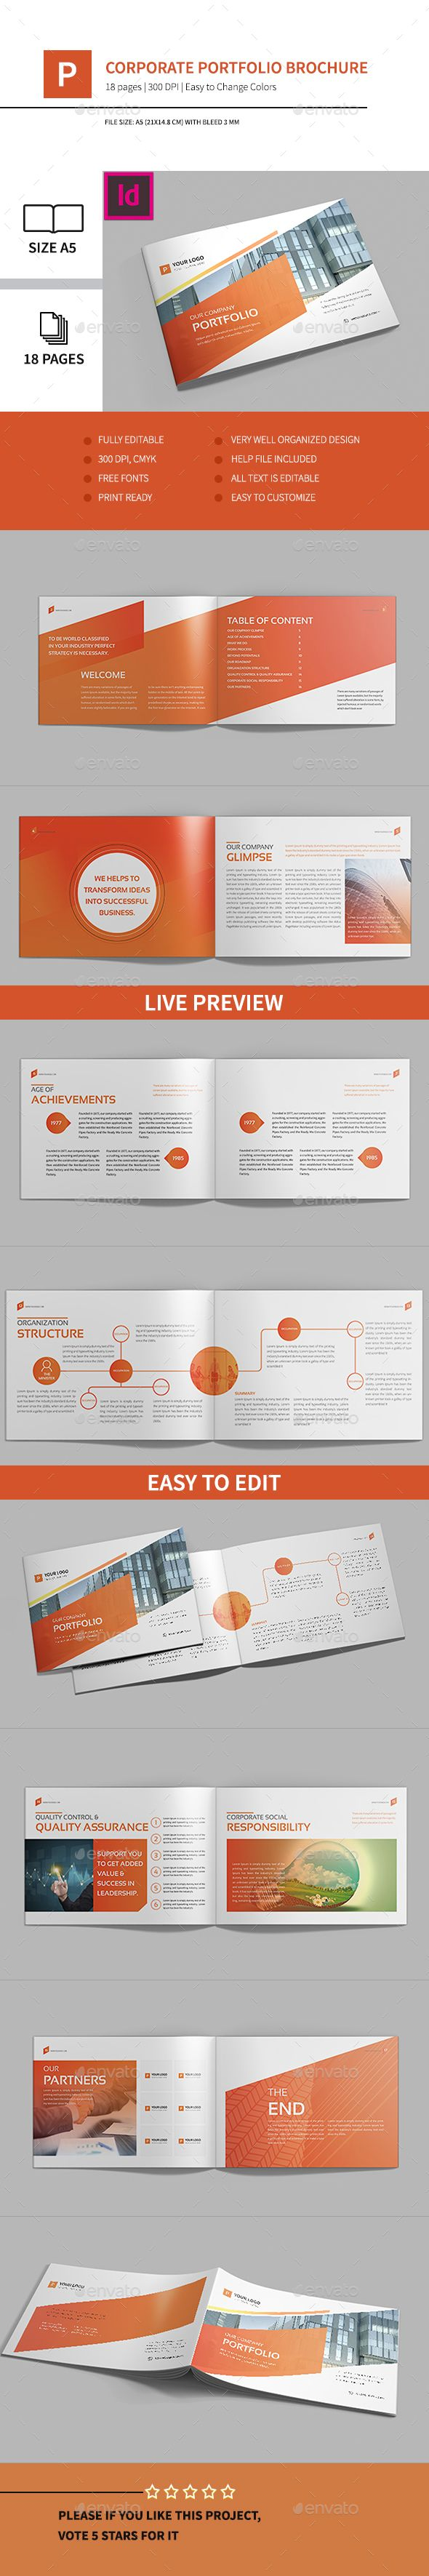 Corporate Portfolio Brochure 18 Pages A5 horizontal Template InDesign INDD #design Download: http://graphicriver.net/item/corporate-portfolio-brochure-18pages-a5-horizontal/13462326?ref=ksioks